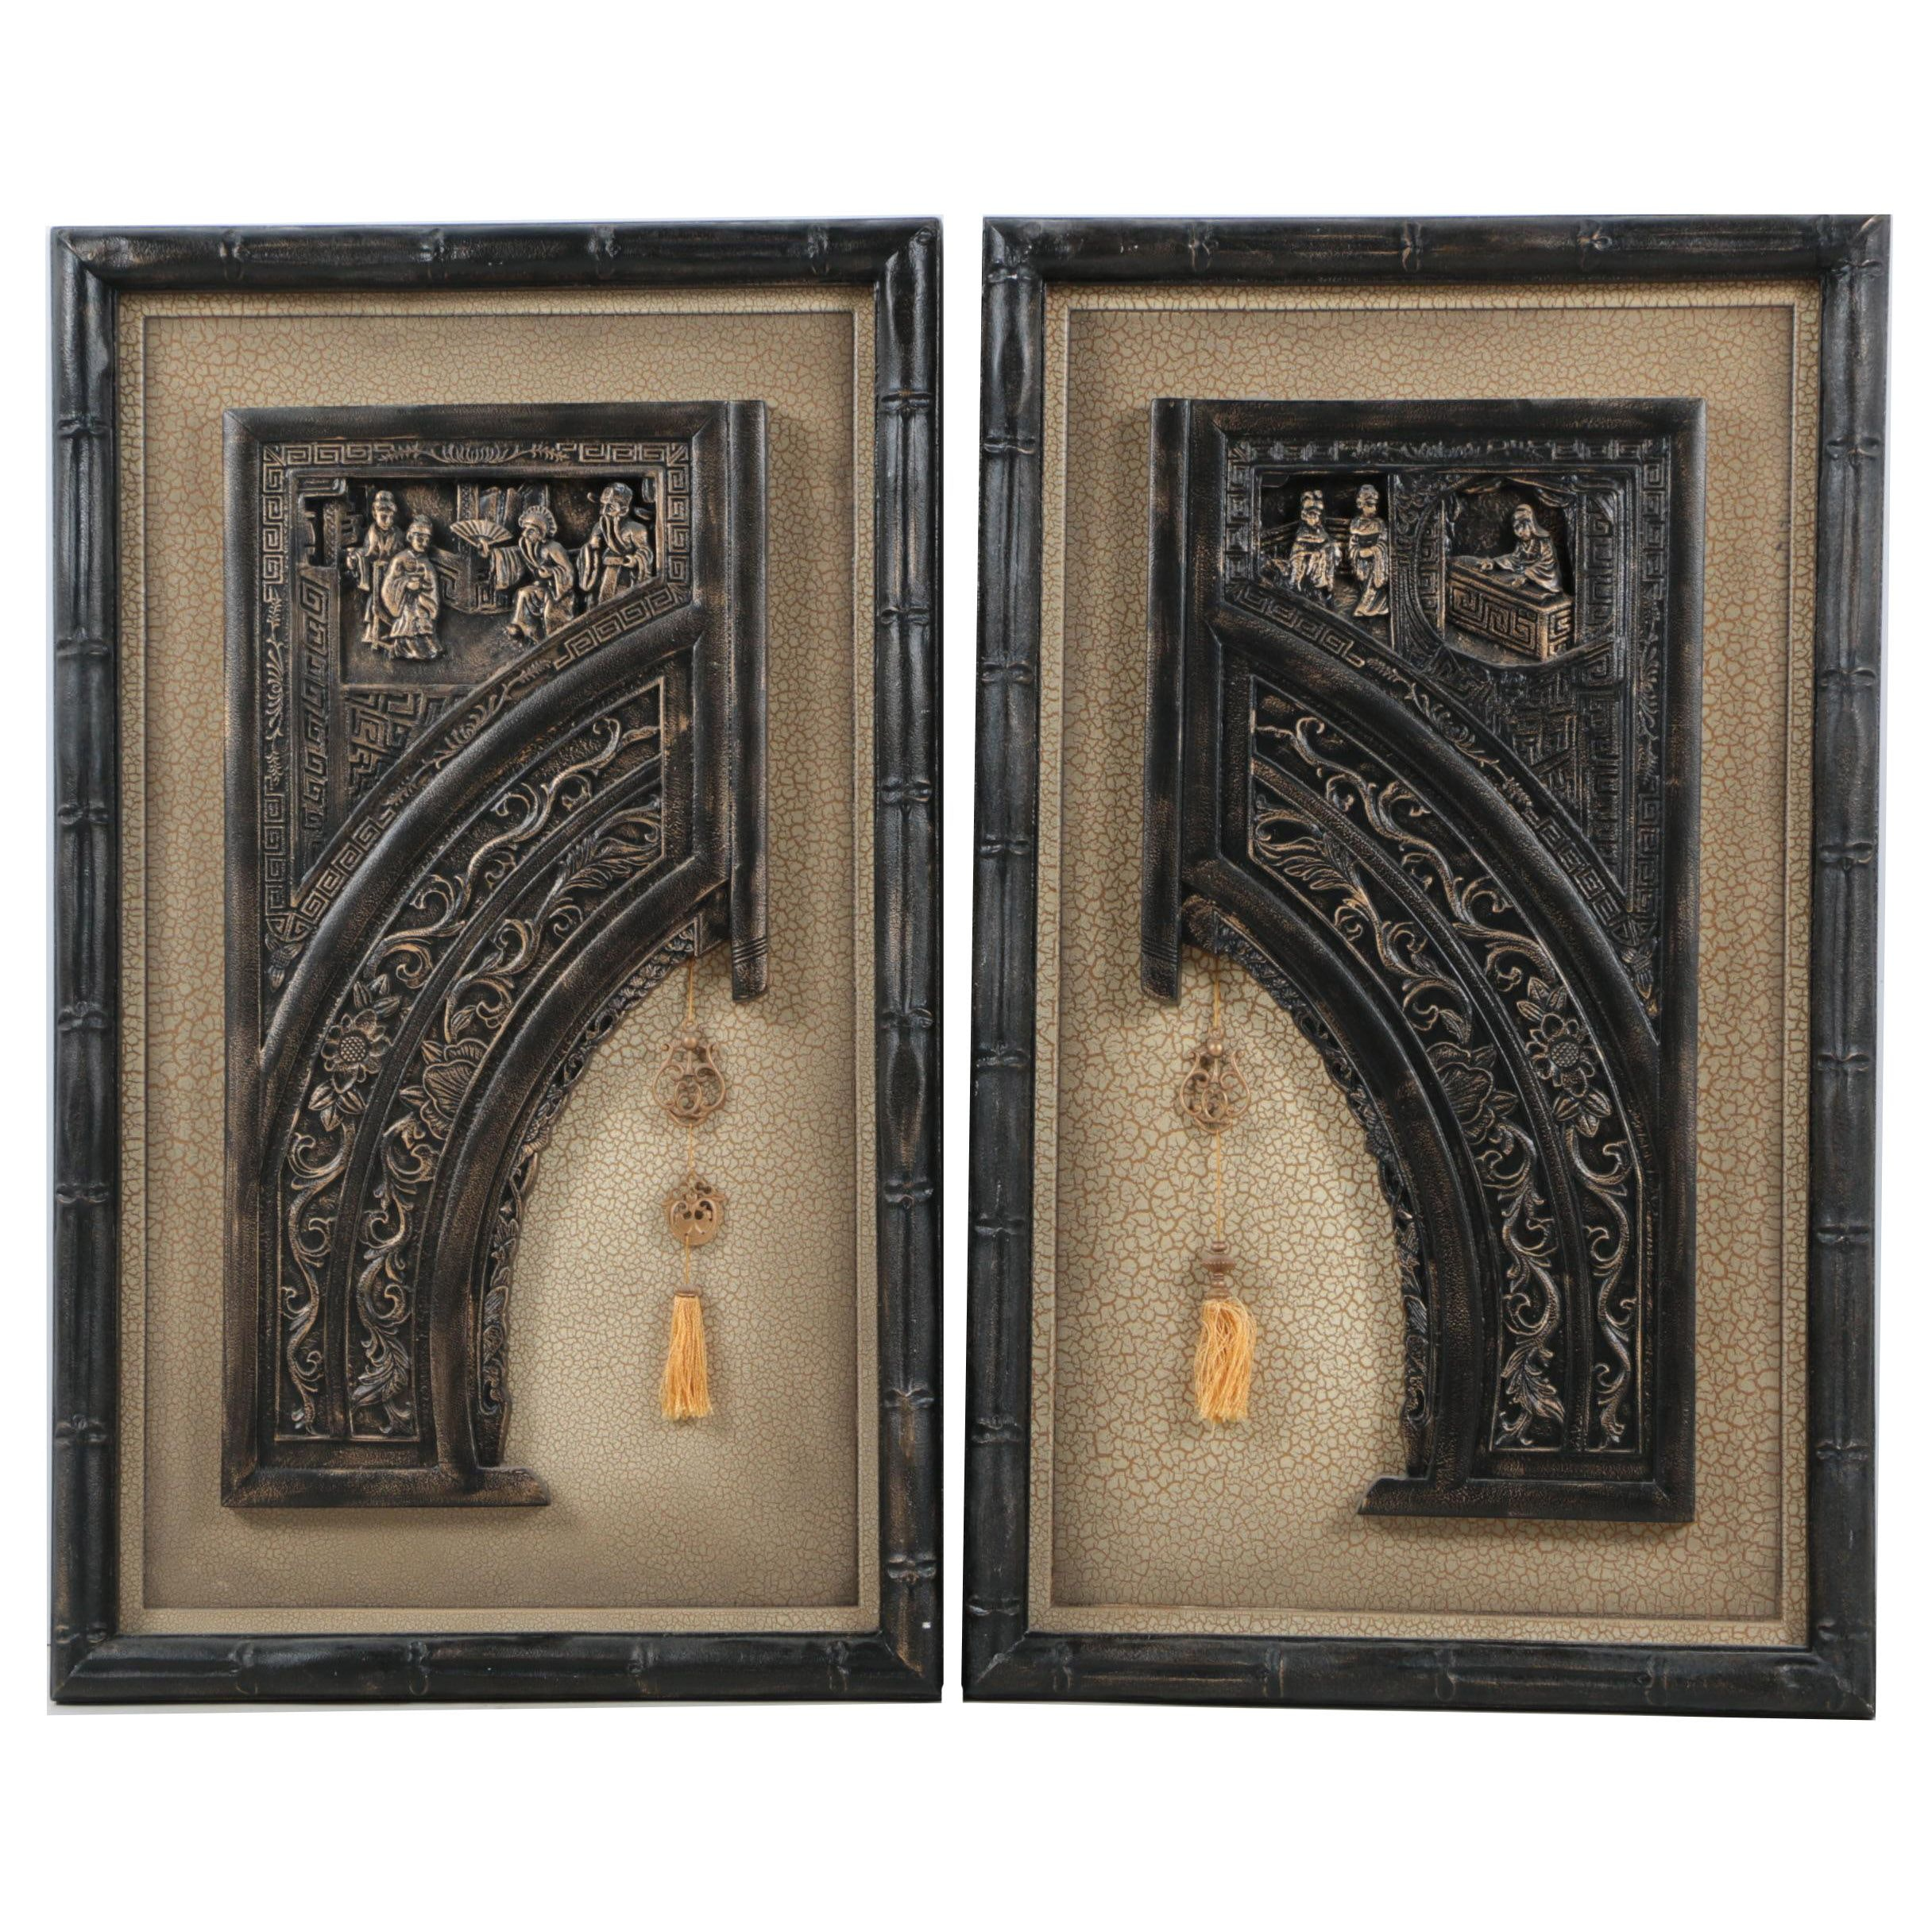 Pair of Chinese Arch Plaques in Wooden Frames